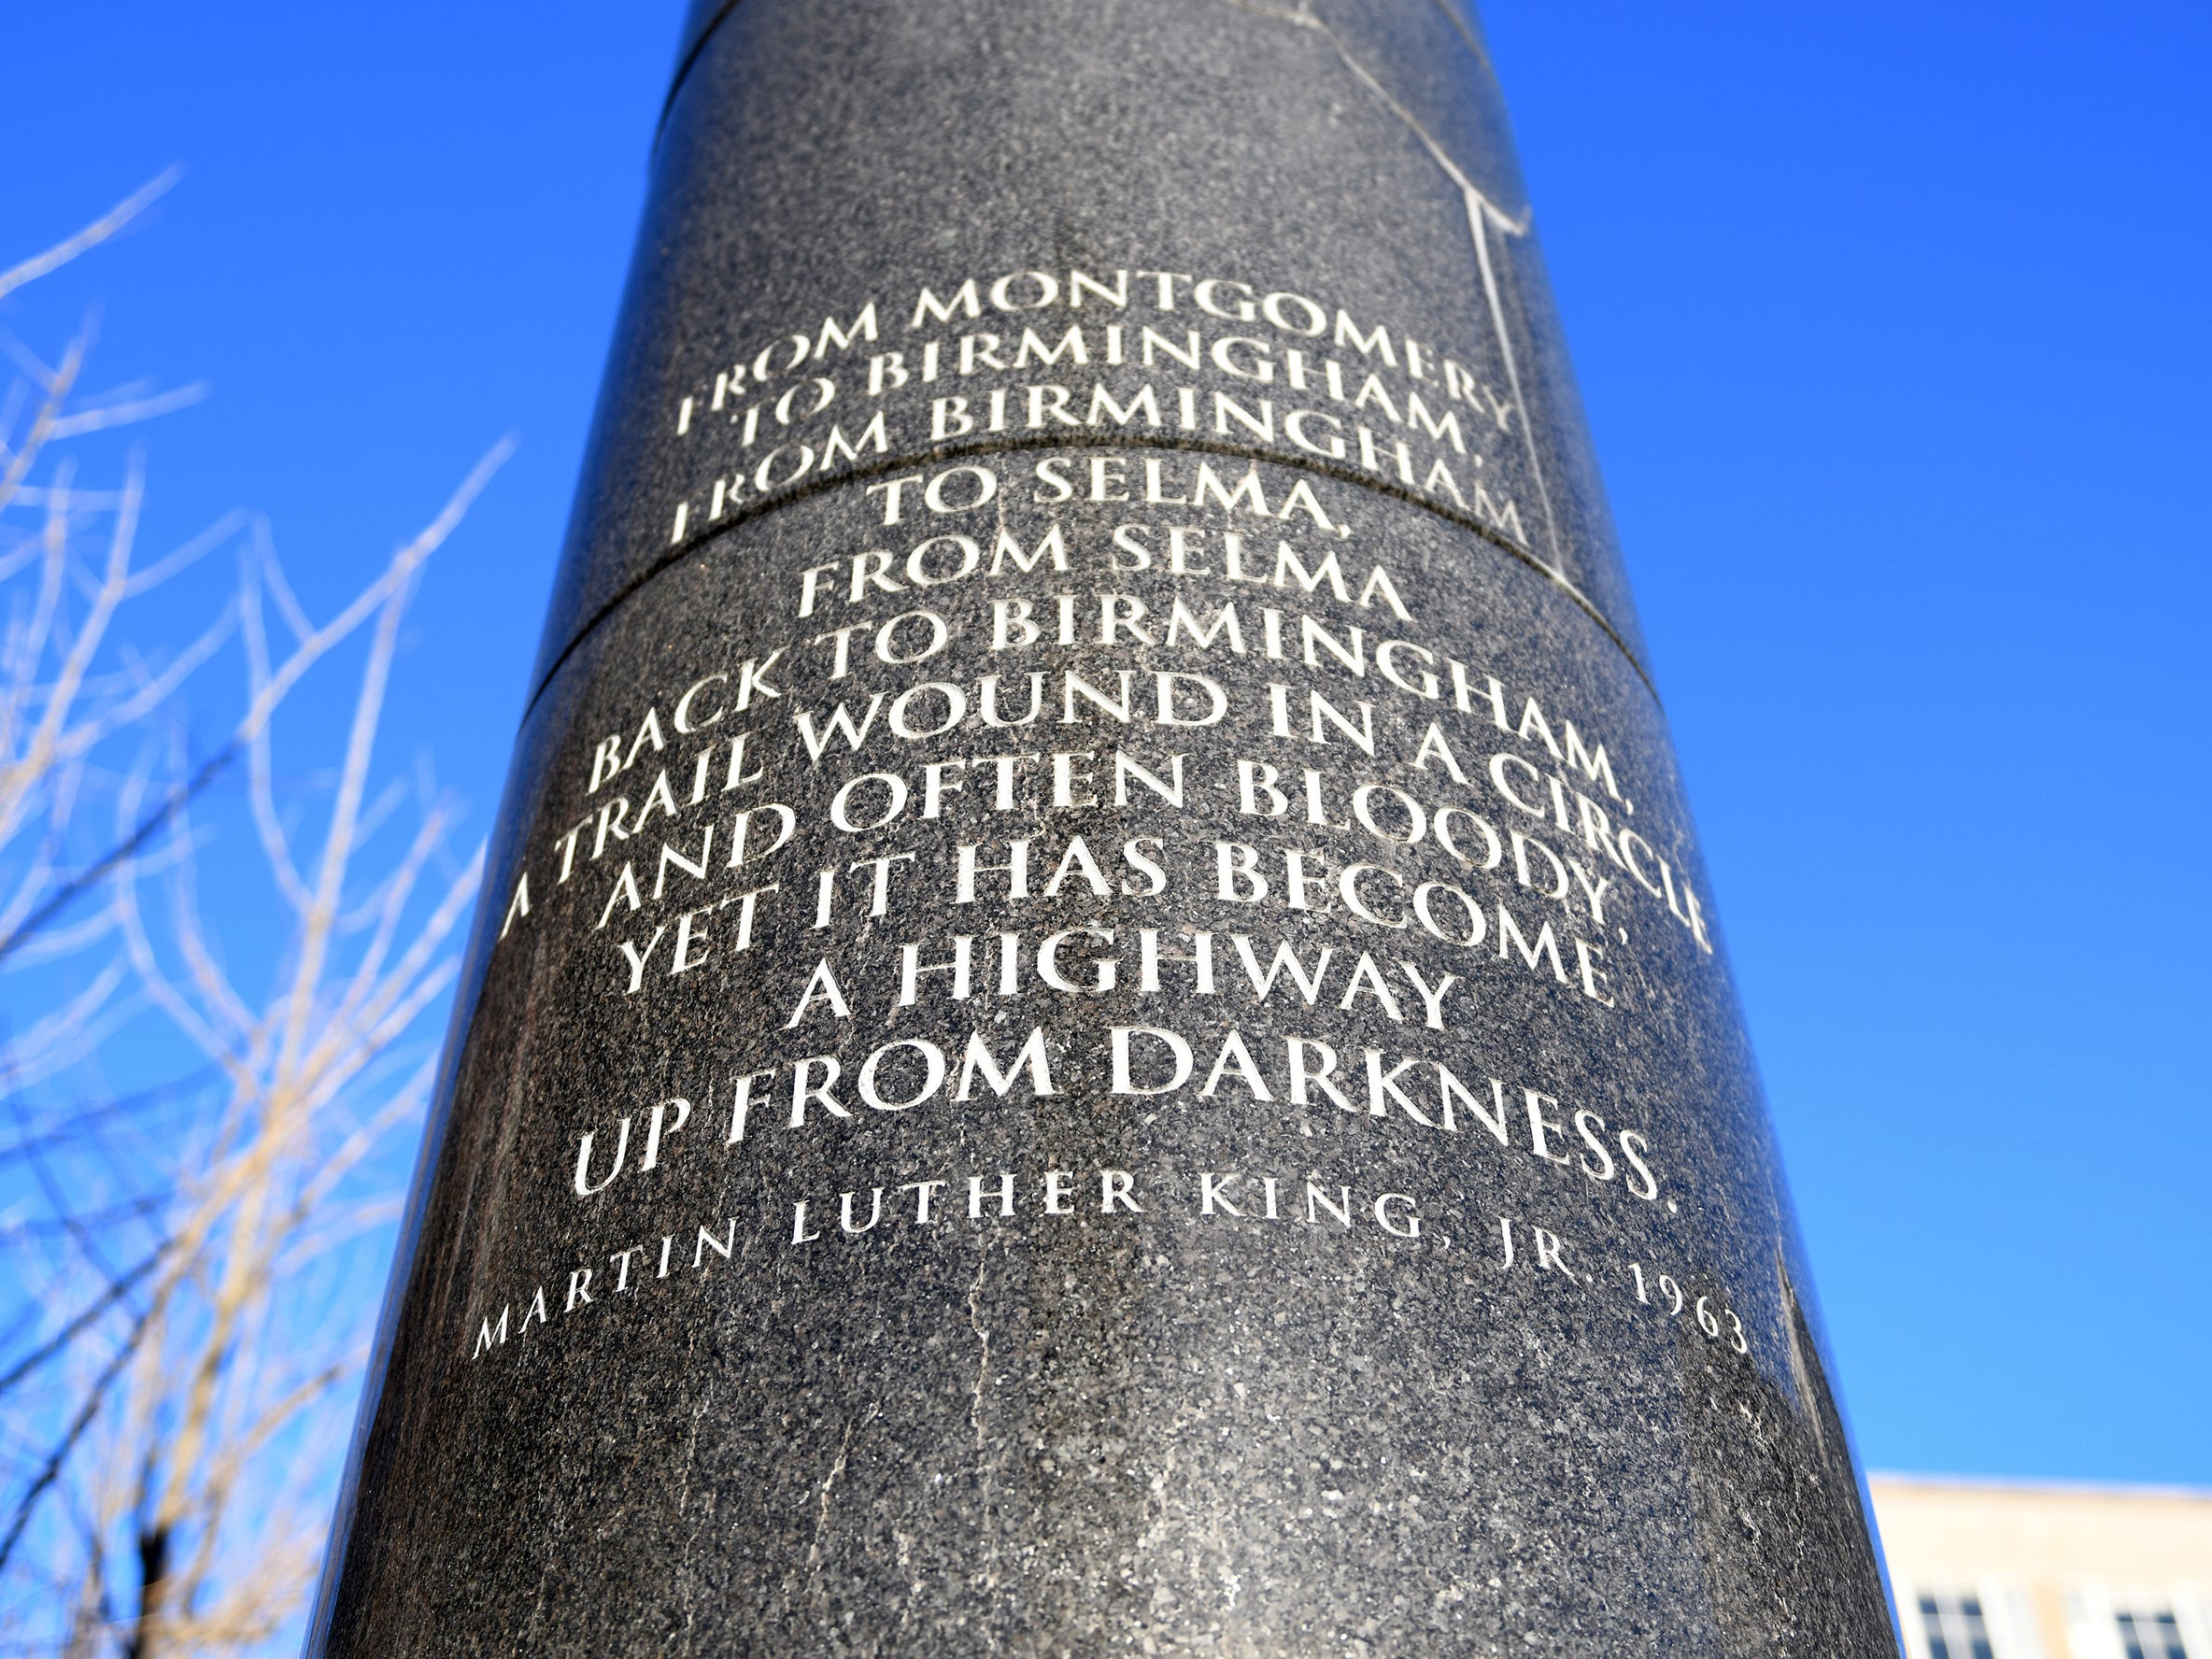 Atlantic City's Civil Rights Garden features 11 African granite columns engraved with quotes from distinguished civil rights leaders including Dr. Martin Luther King Jr.